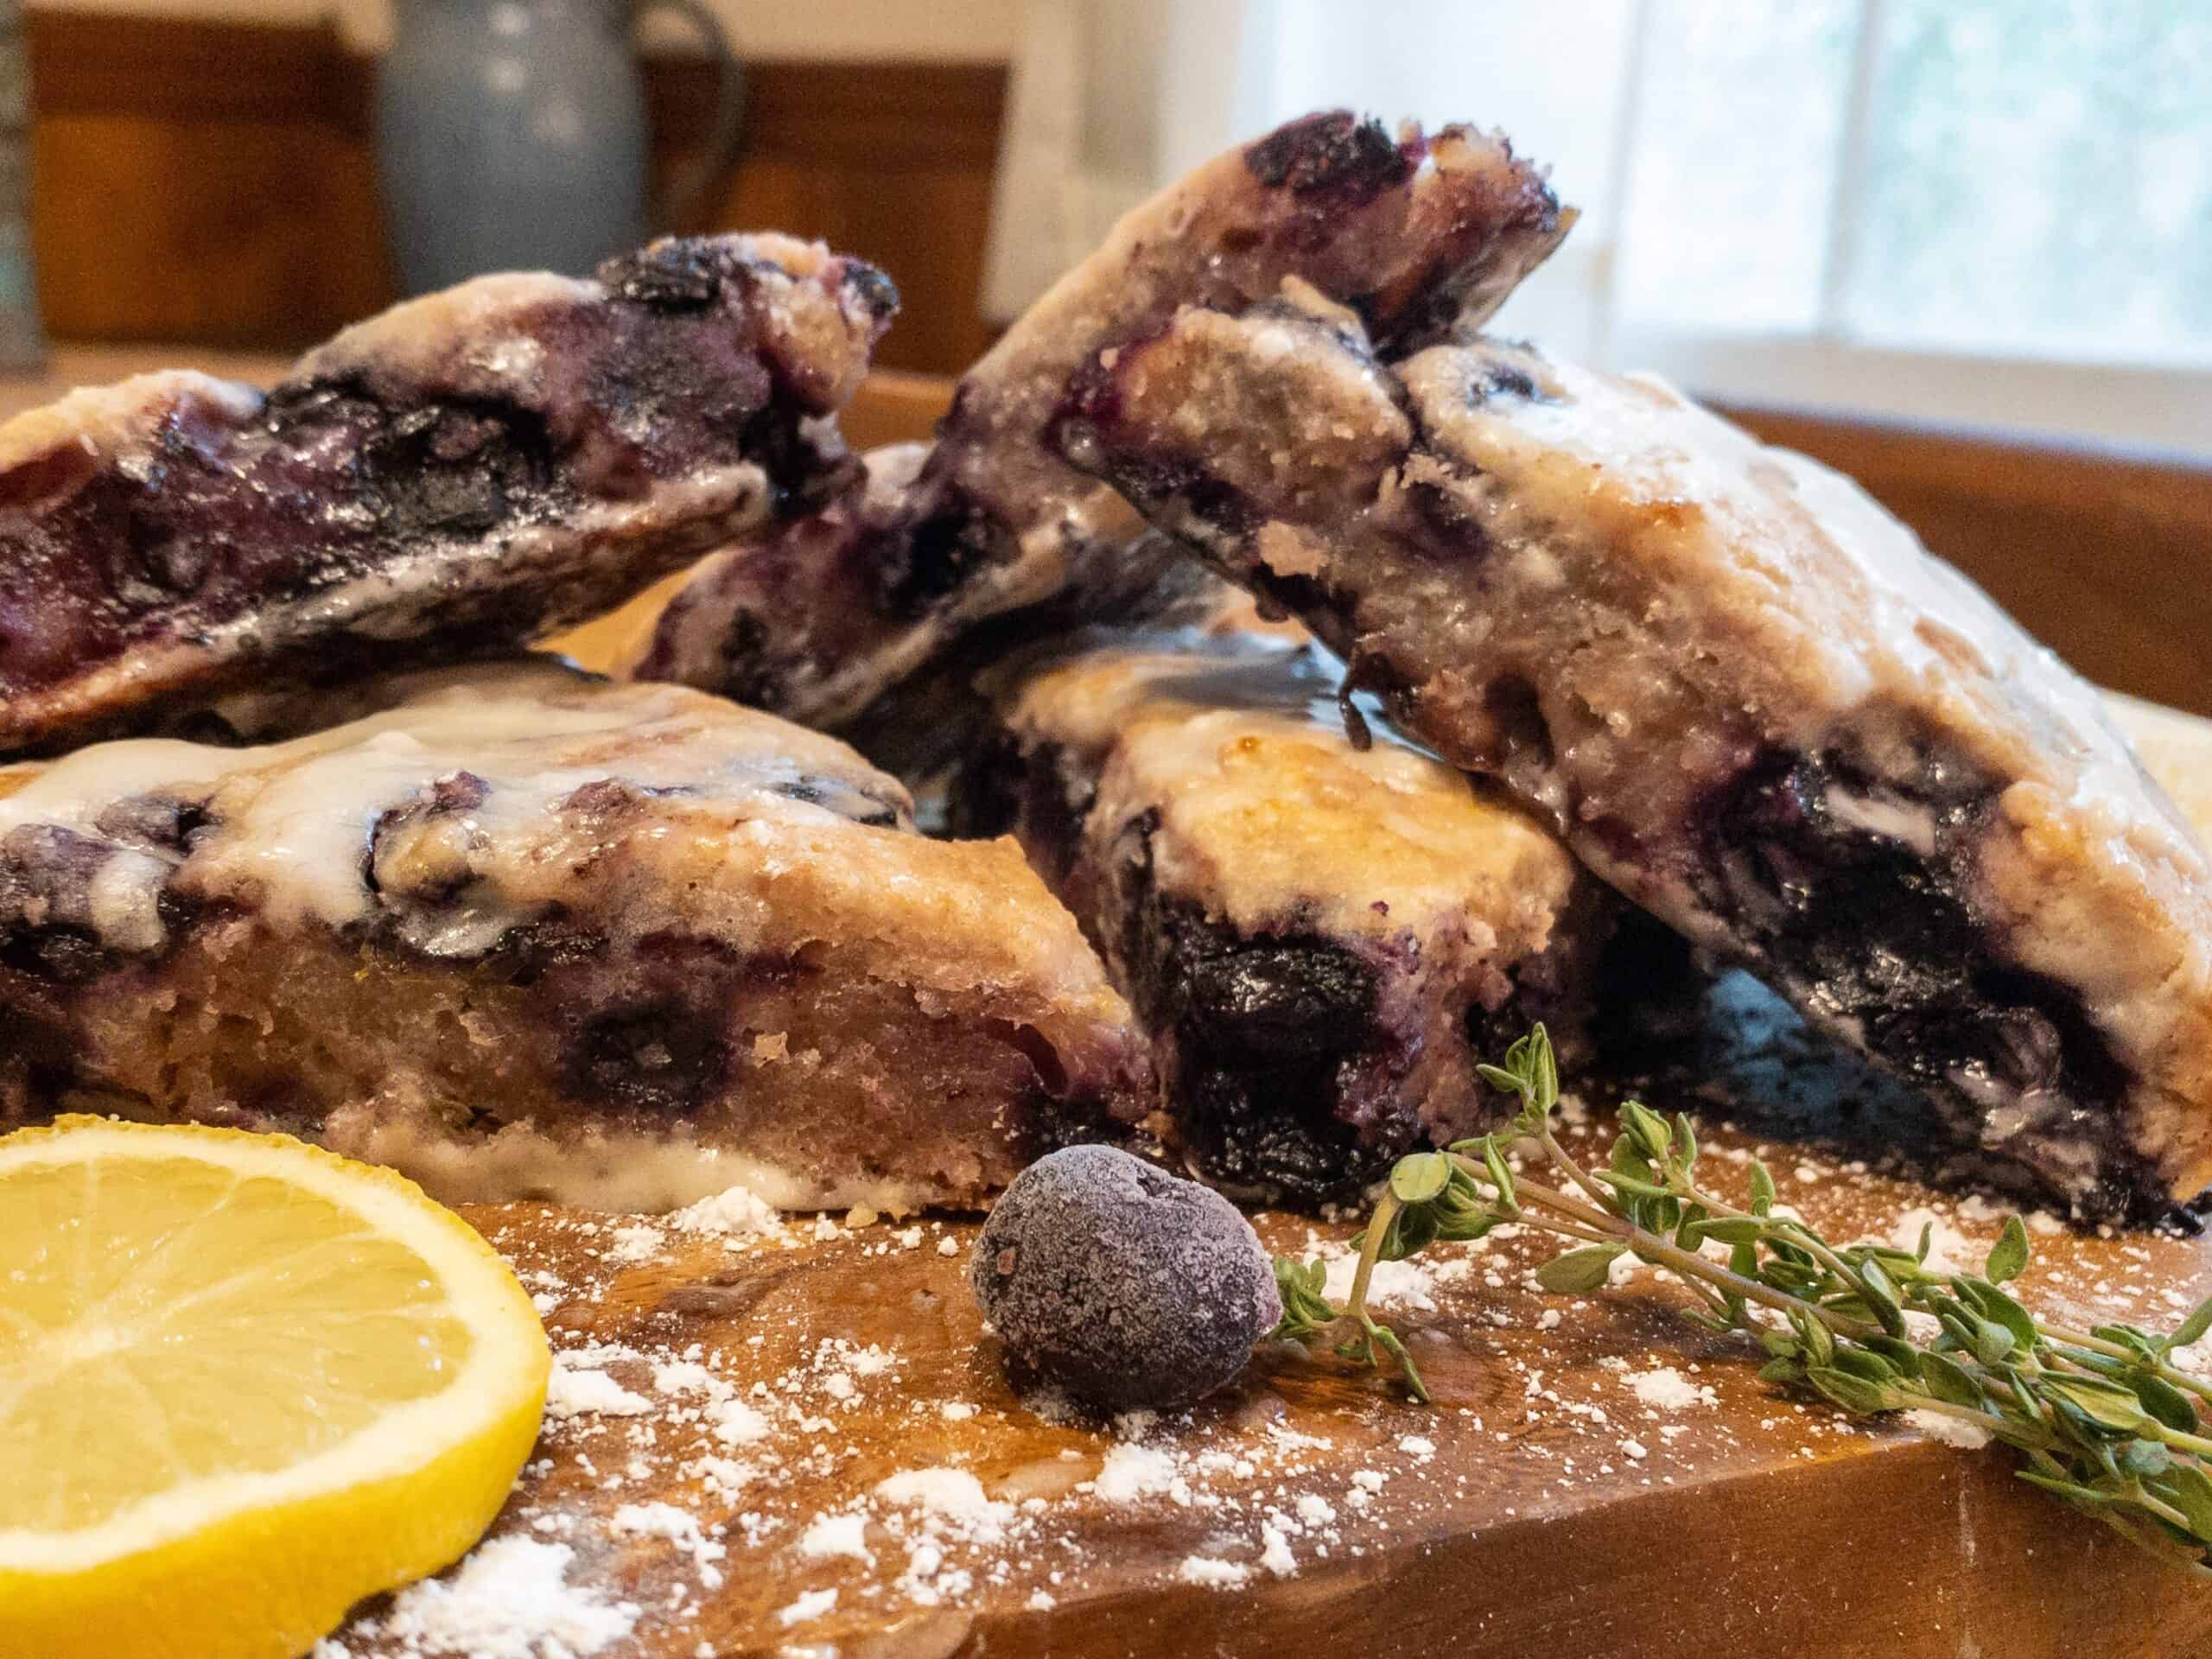 Gluten Free Blueberry Scones with Lemon & Thyme